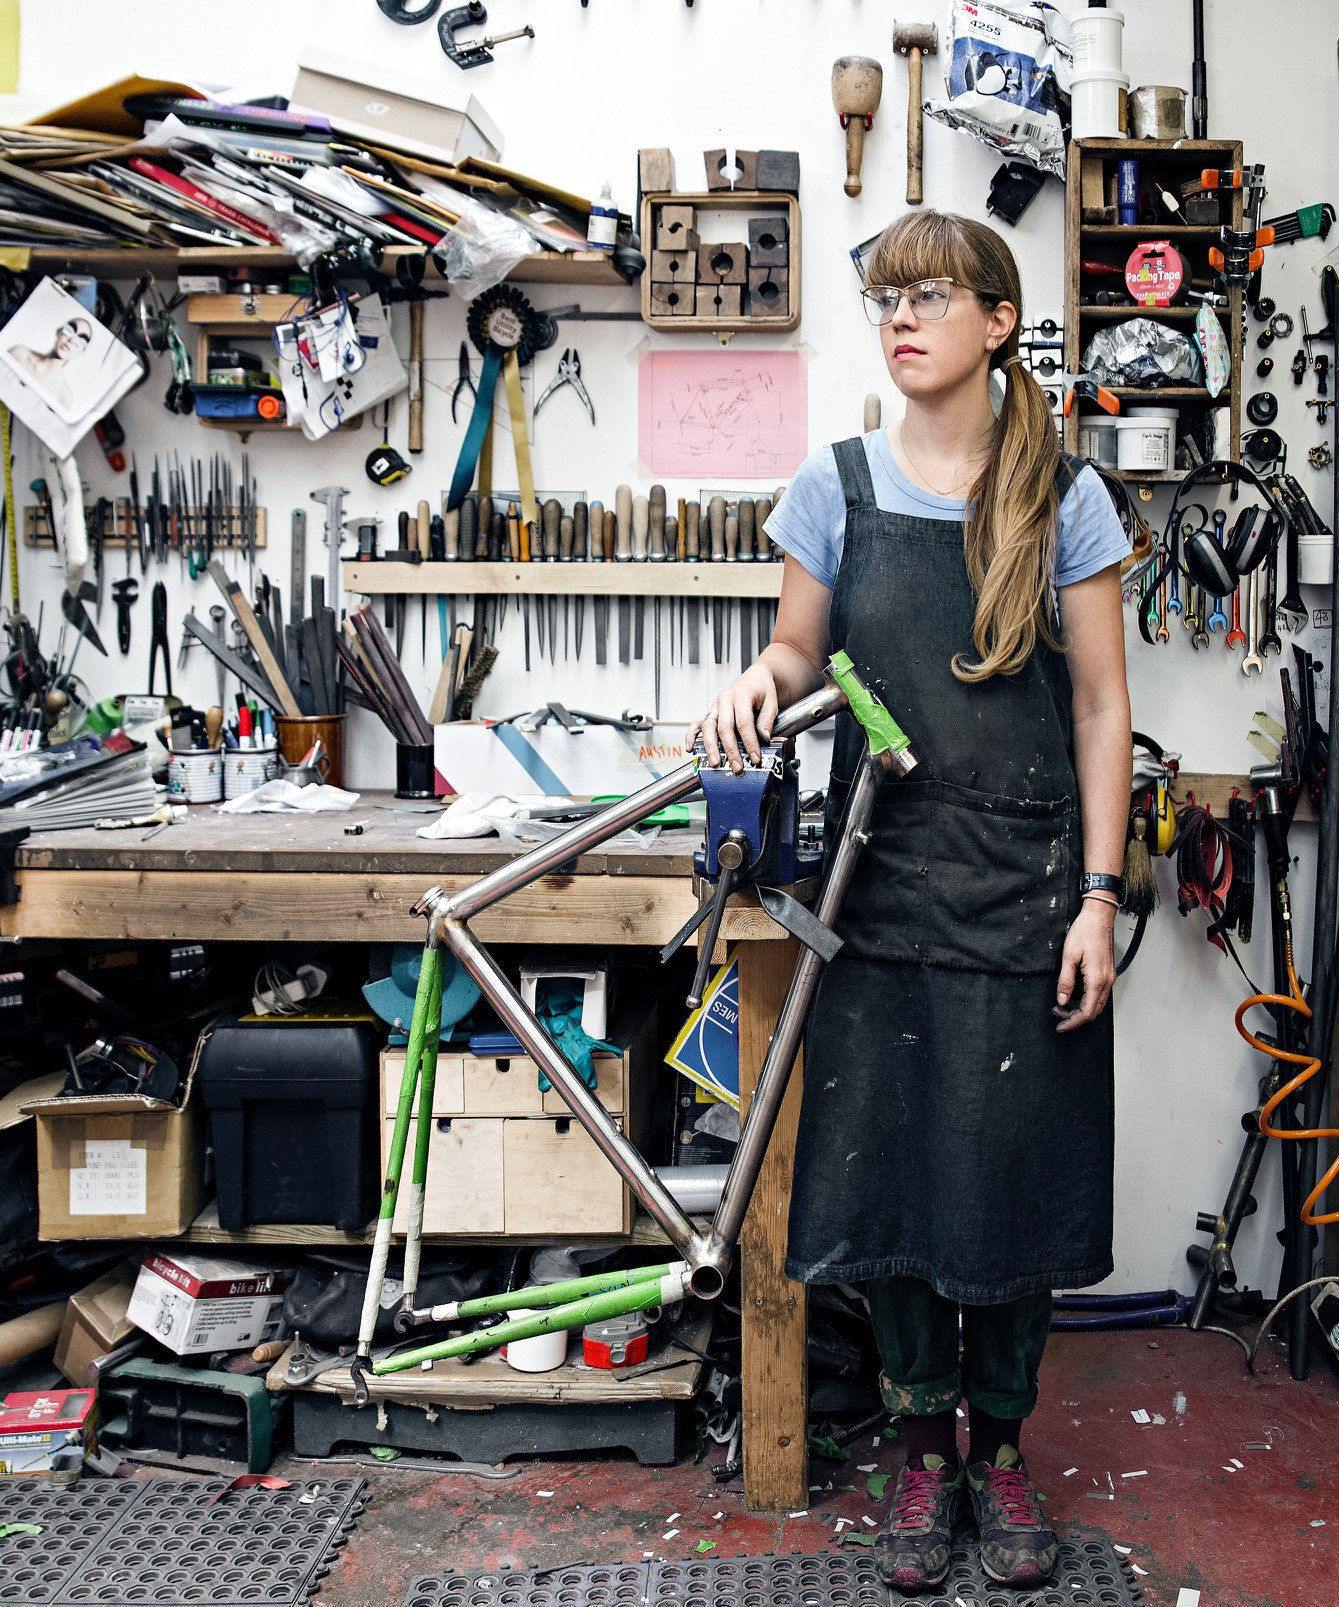 Bike Builder Caren Hartley On The Female Inspiration That Encouraged Her To